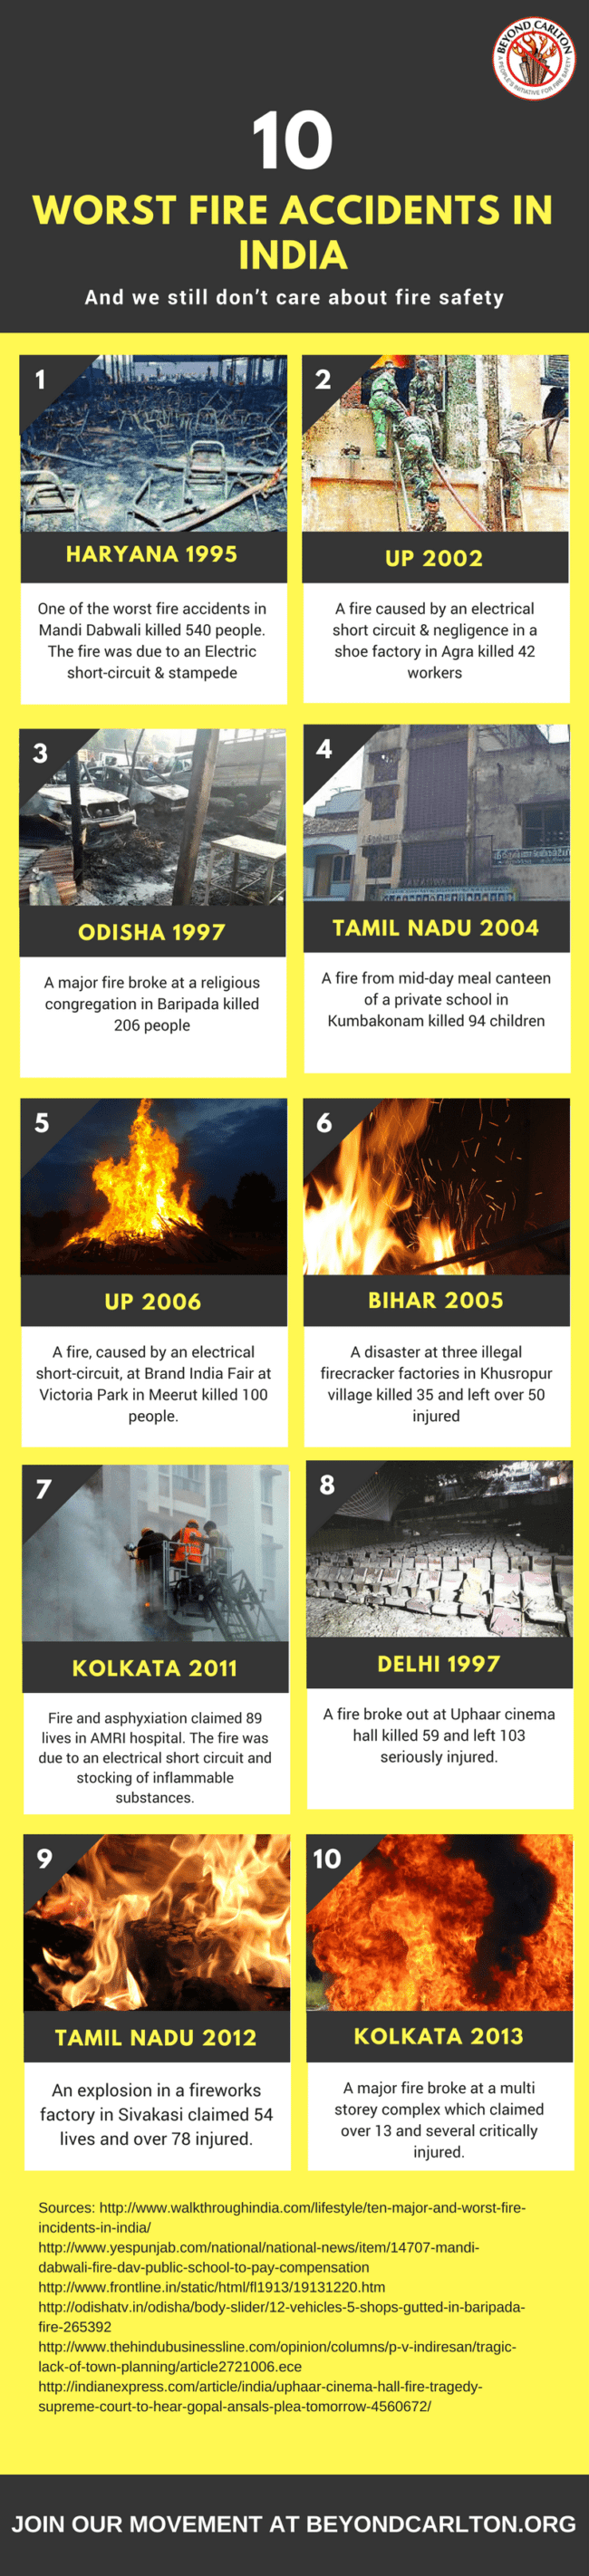 10 worst fire accidents in India